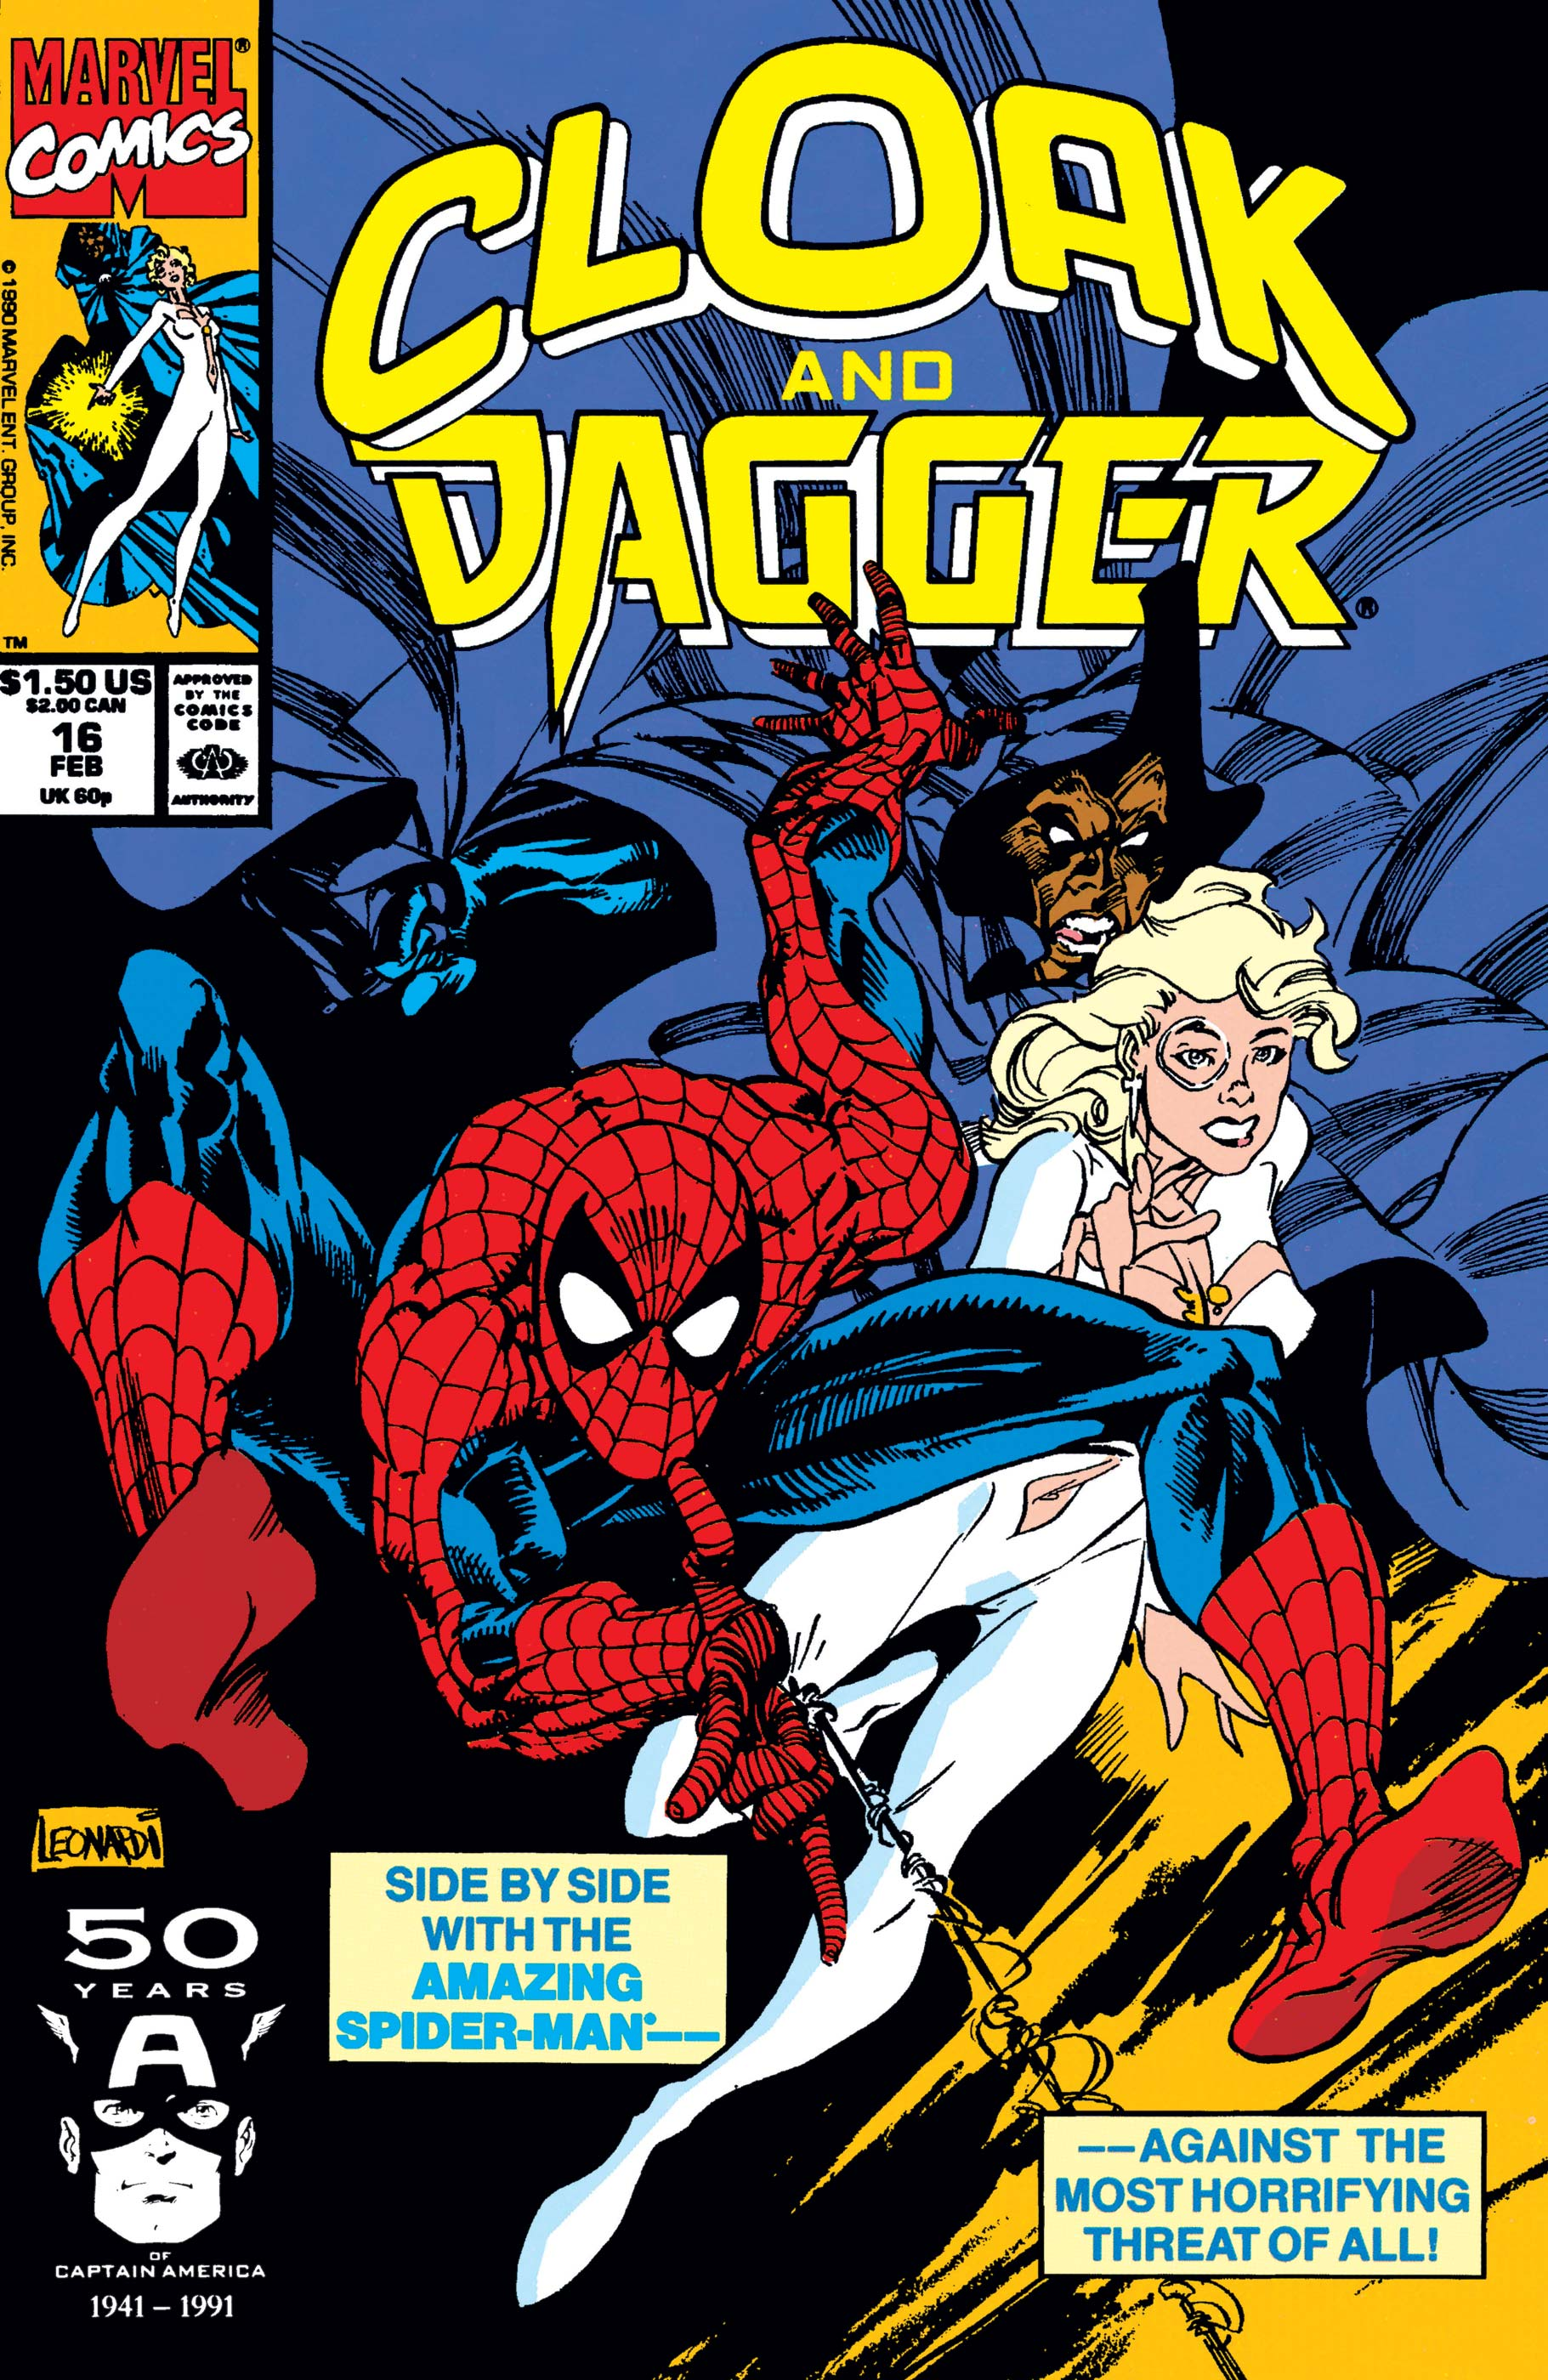 The Mutant Misadventures of Cloak and Dagger (1988) #16